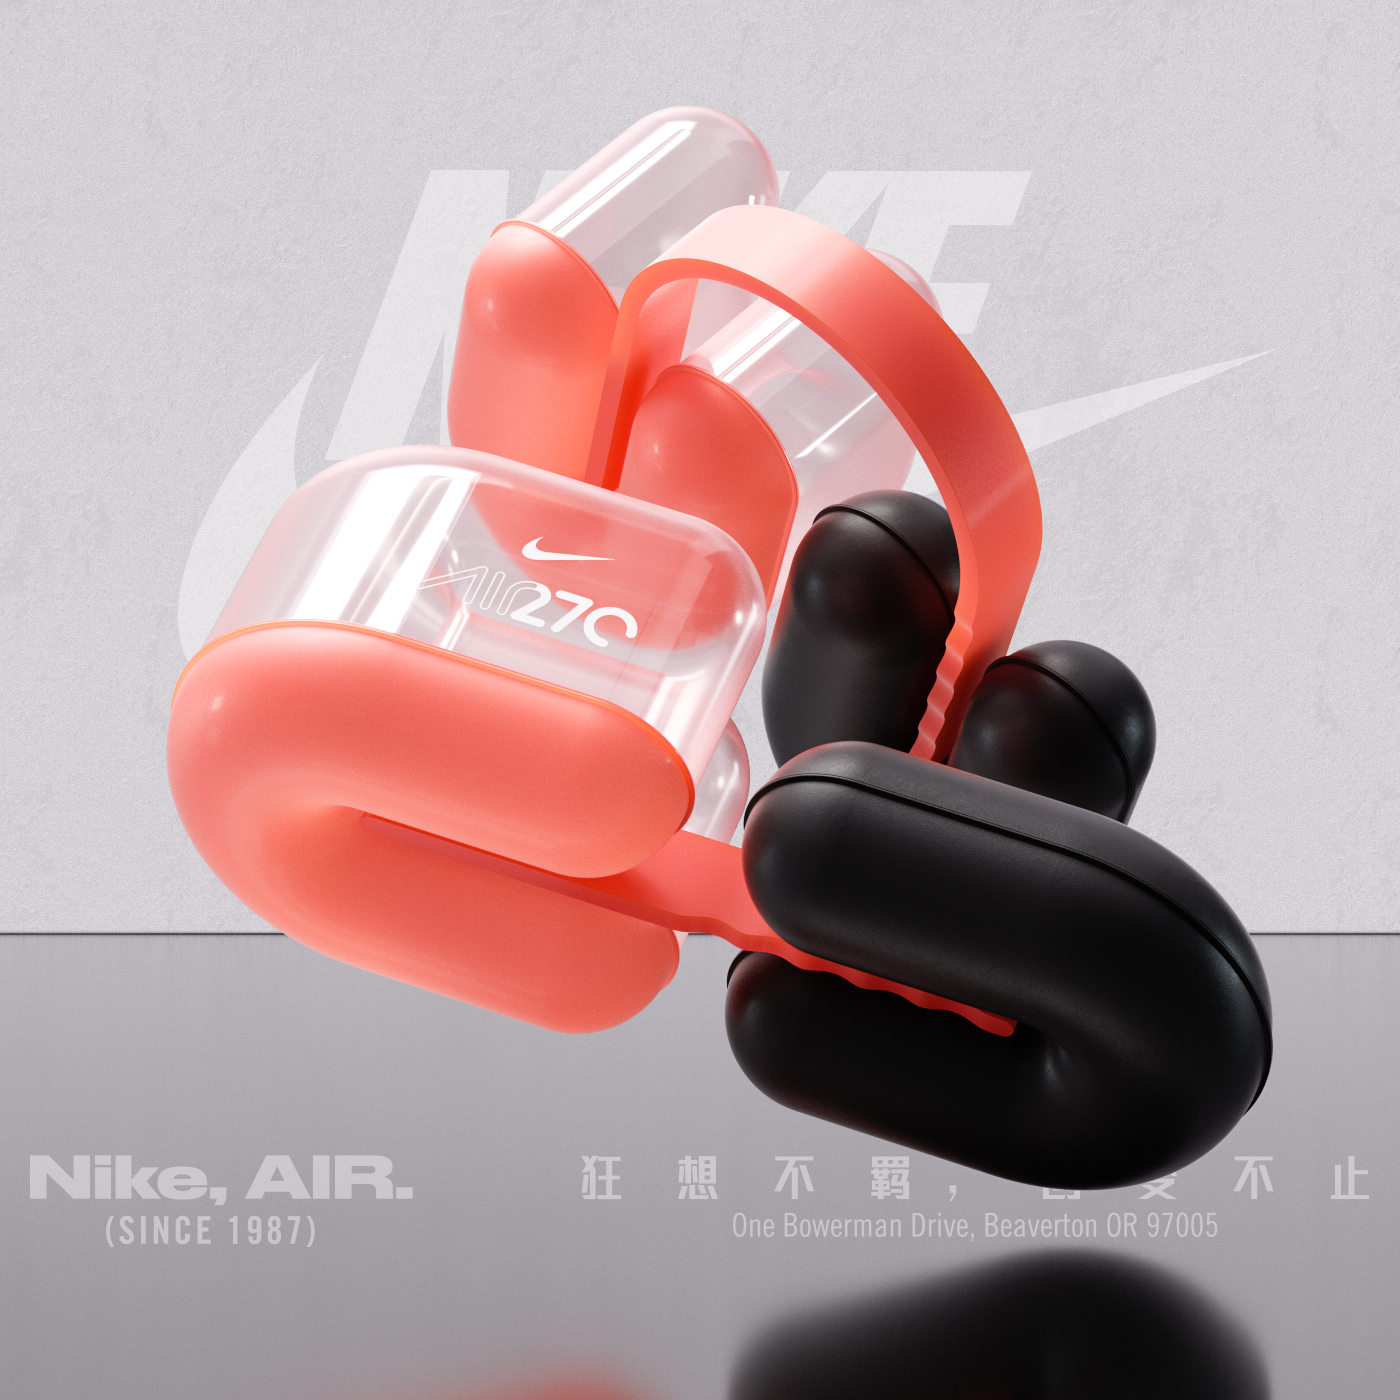 nike air max 720 illustrazione & tipografia 3d pinterest air